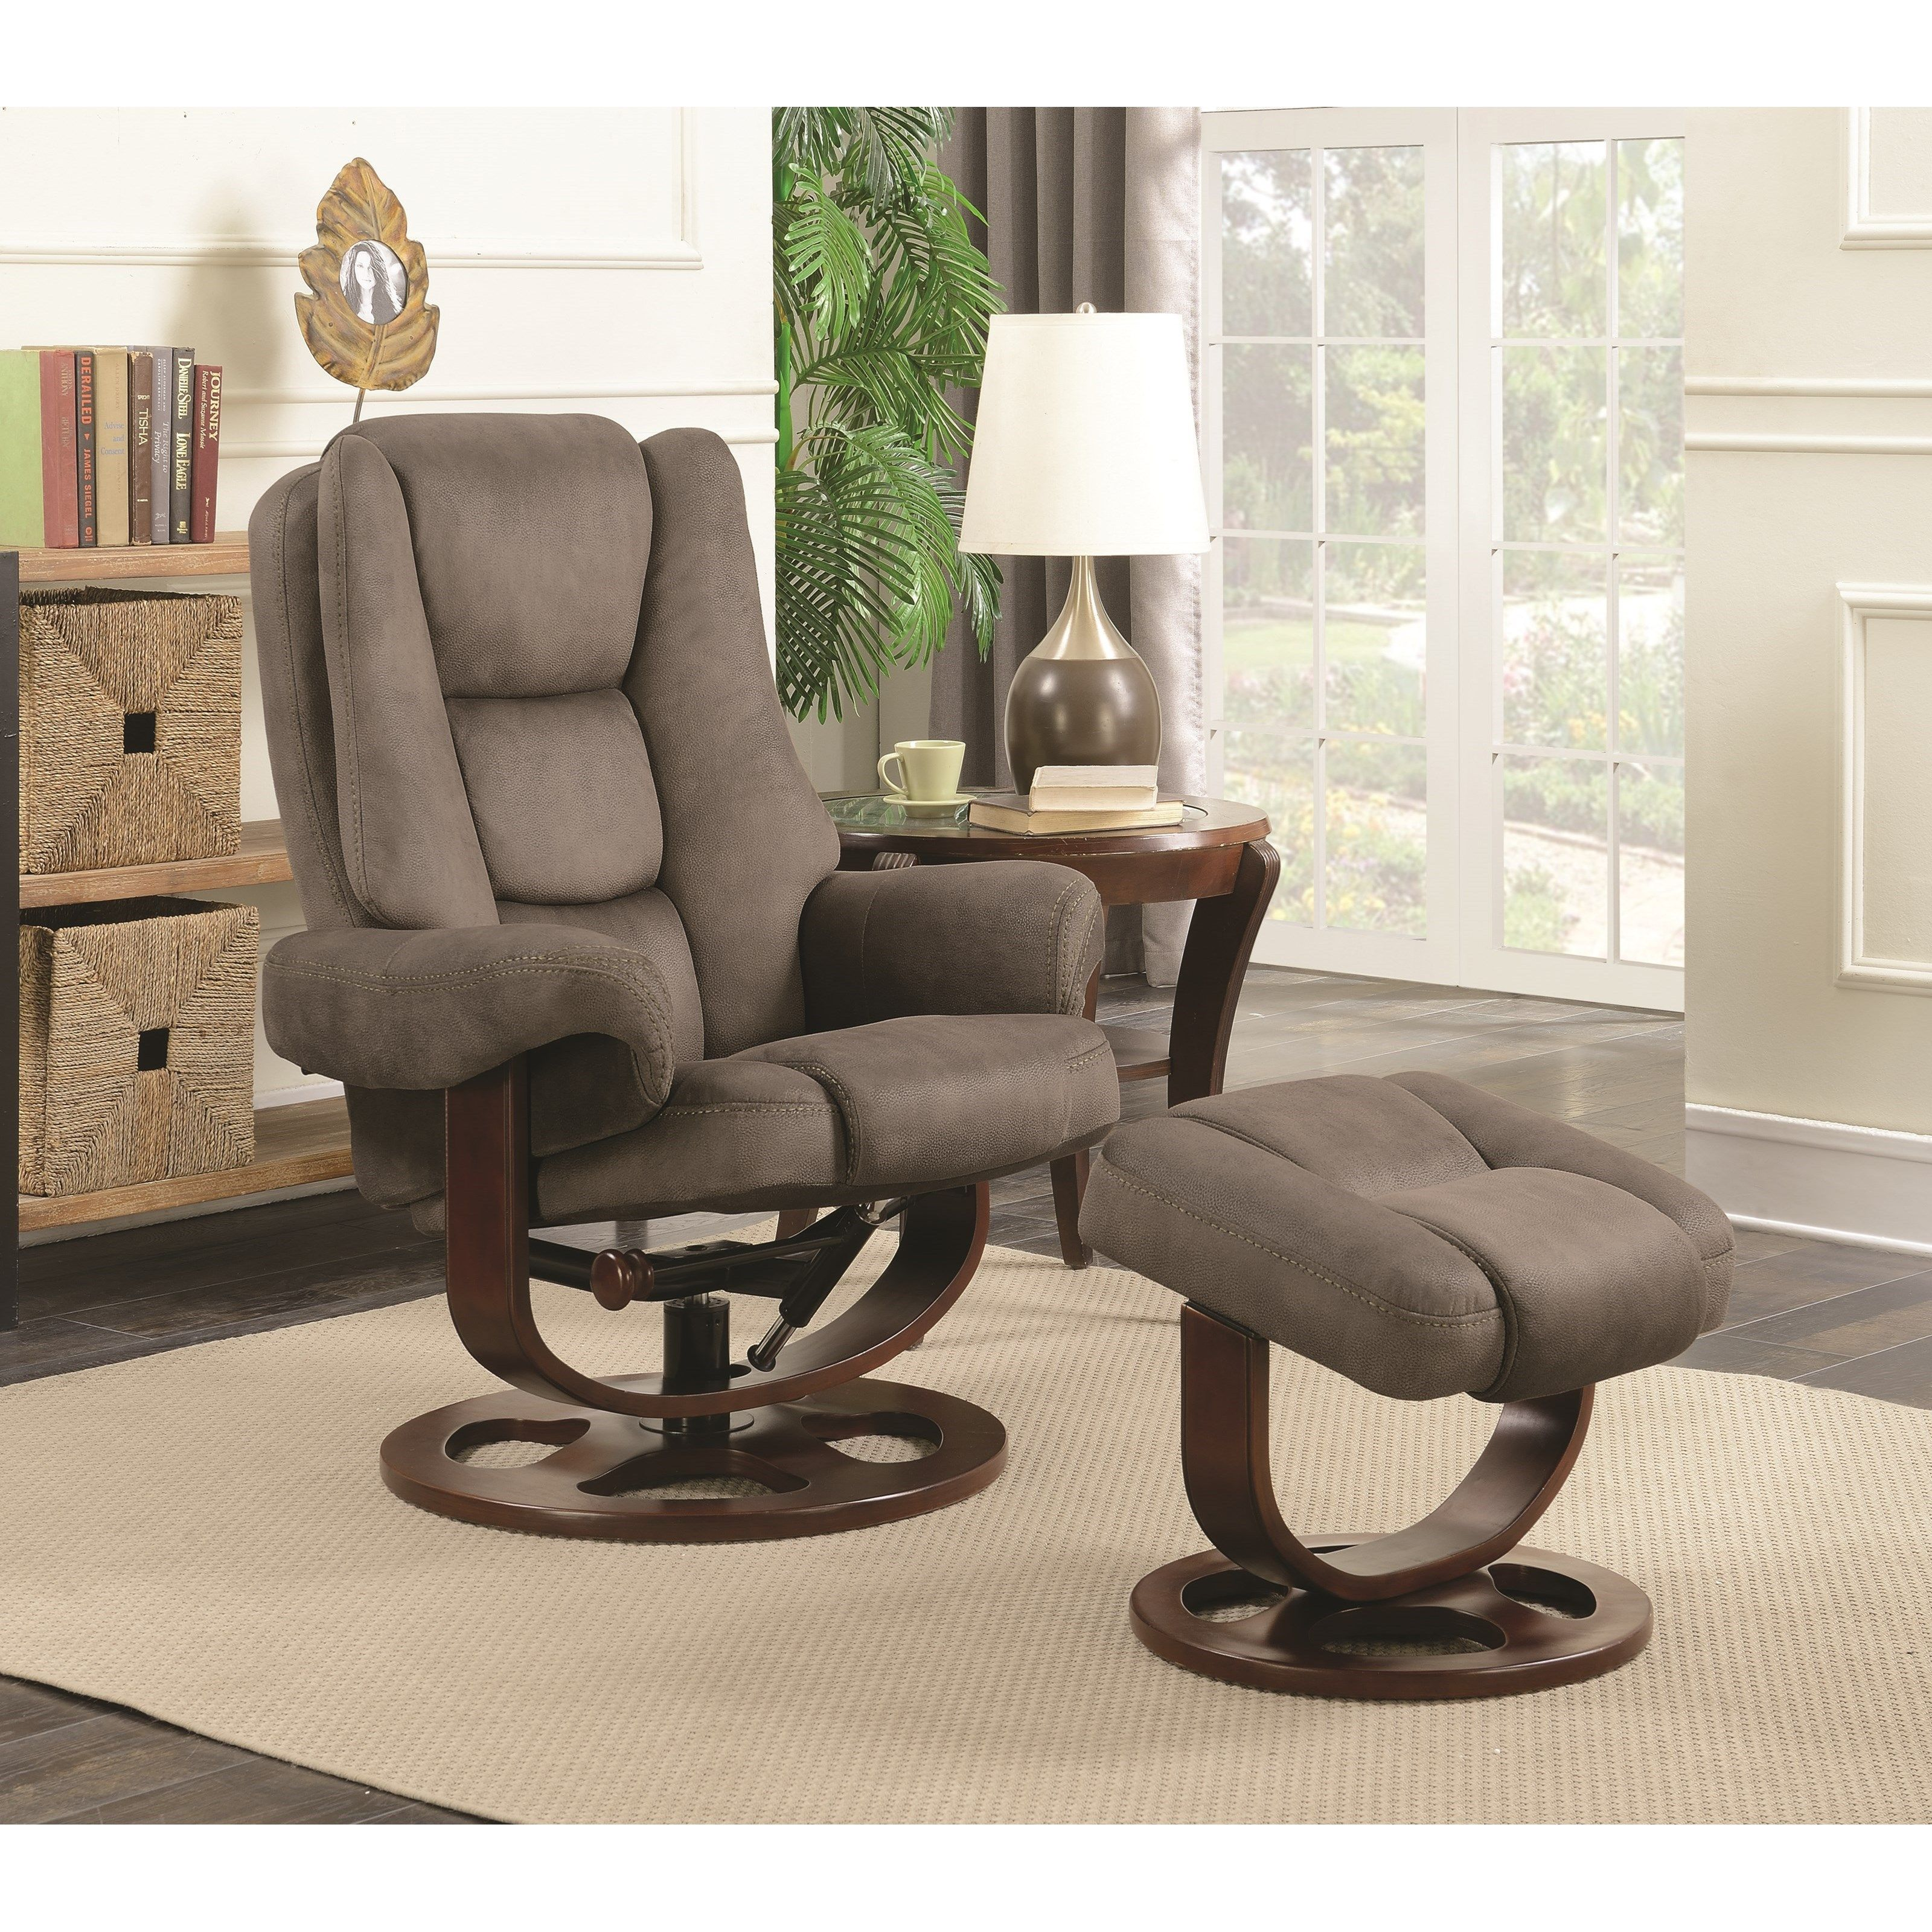 Coaster Recliners with Ottomans Reclining Chair With